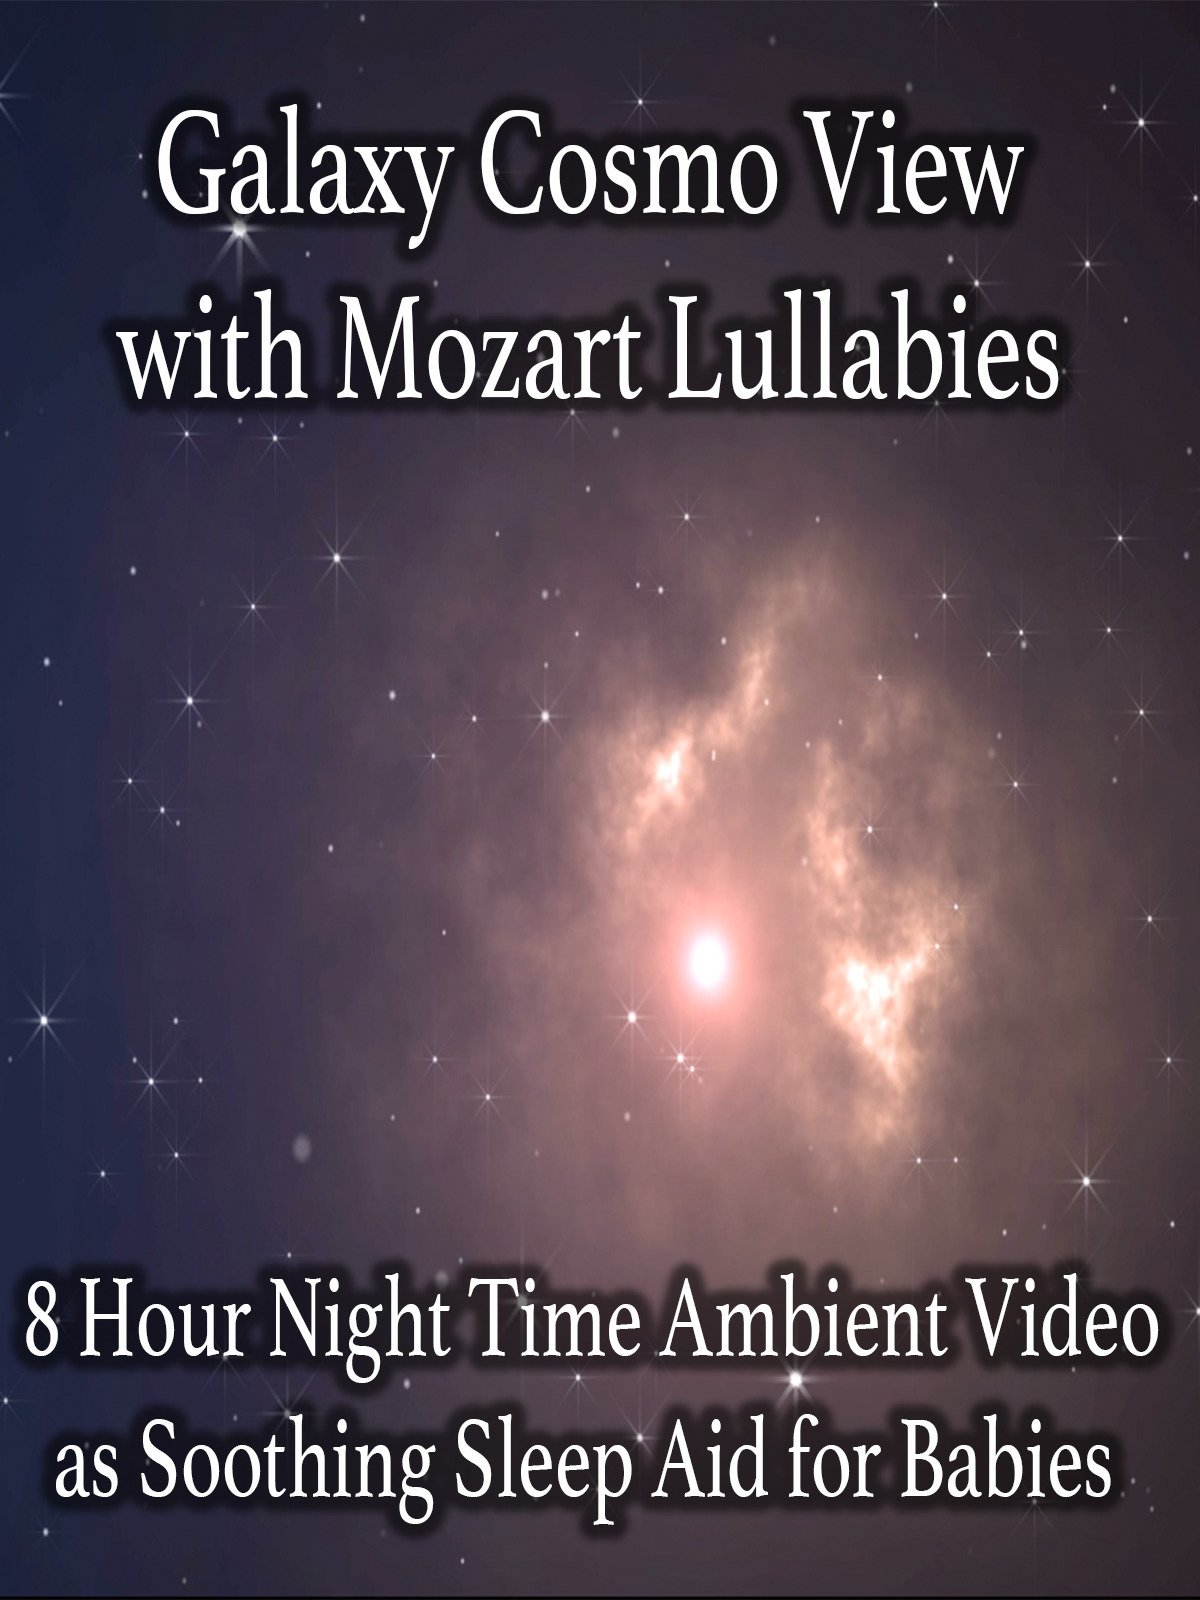 Galaxy Cosmo View with Mozart Lullabies 8 Hour Night Time Ambient Video as Soothing Sleep Aid for Babies